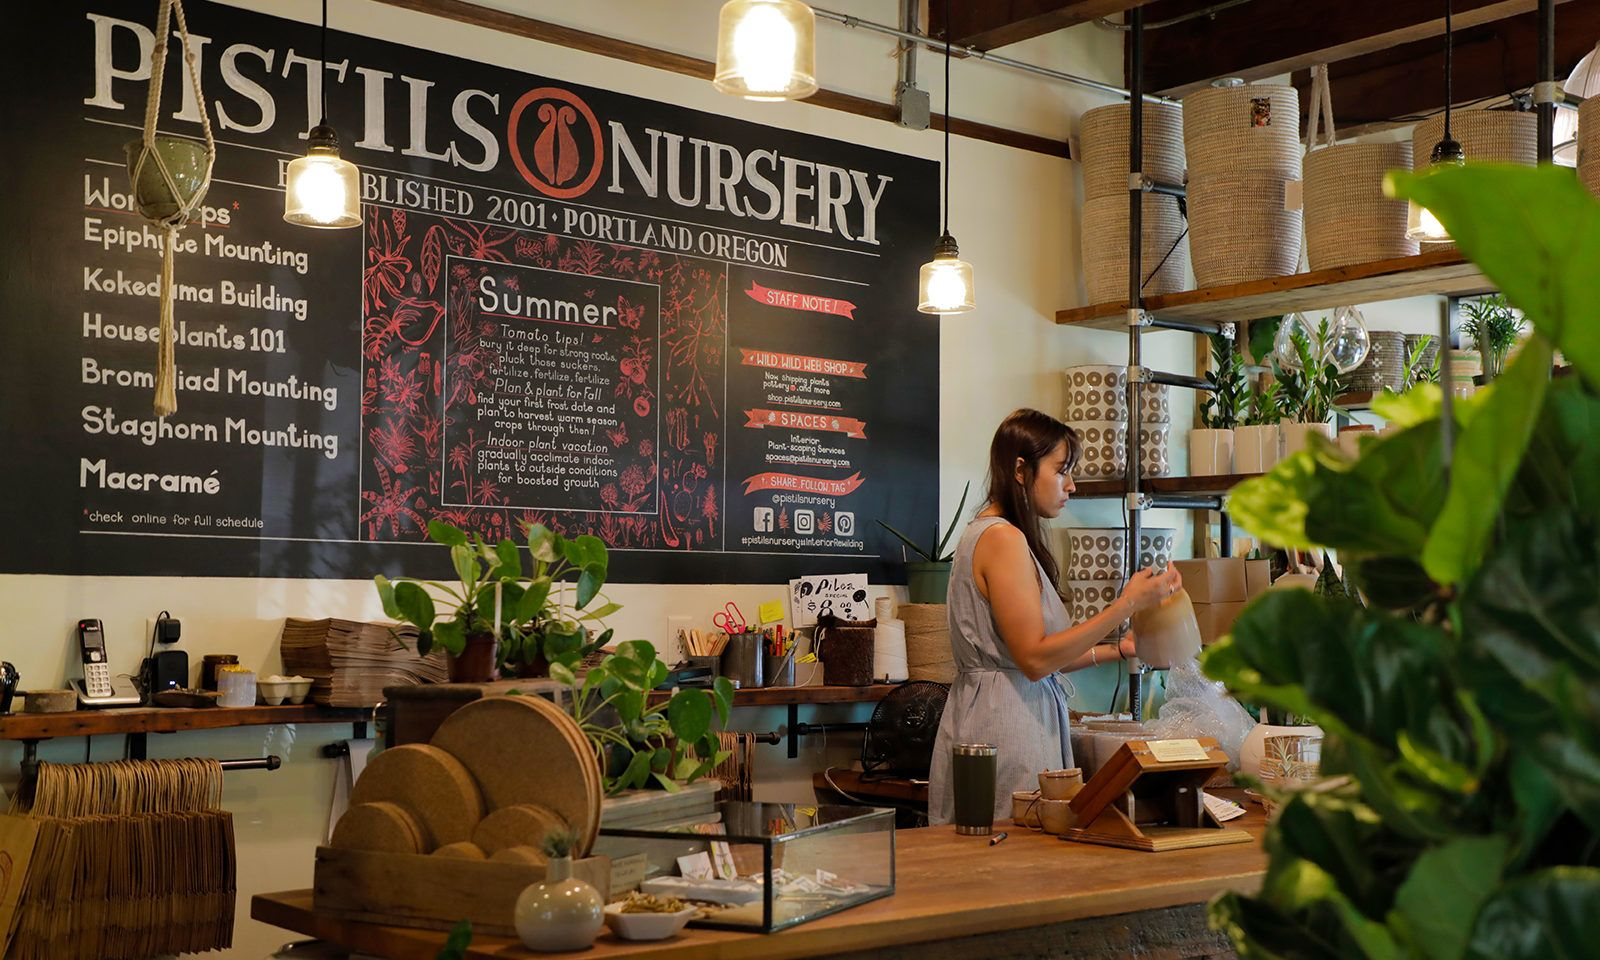 Pistils Nursery on North Mississippi Avenue offers plenty of gardening supplies, plants and resources, including a build-your-own-terrarium station.